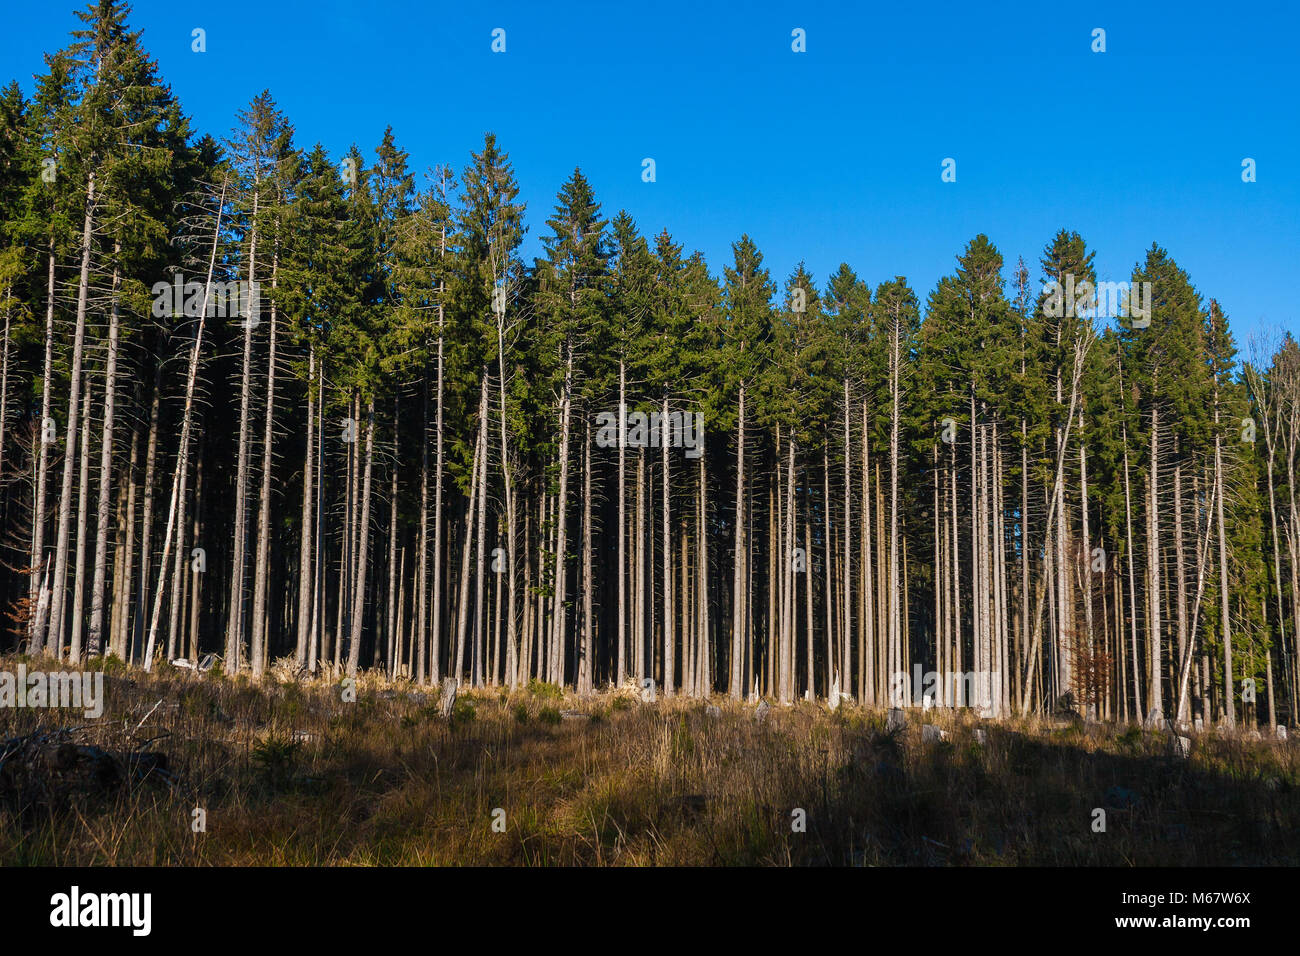 A conifer forest industrially exploited in Vosges, France - Stock Image